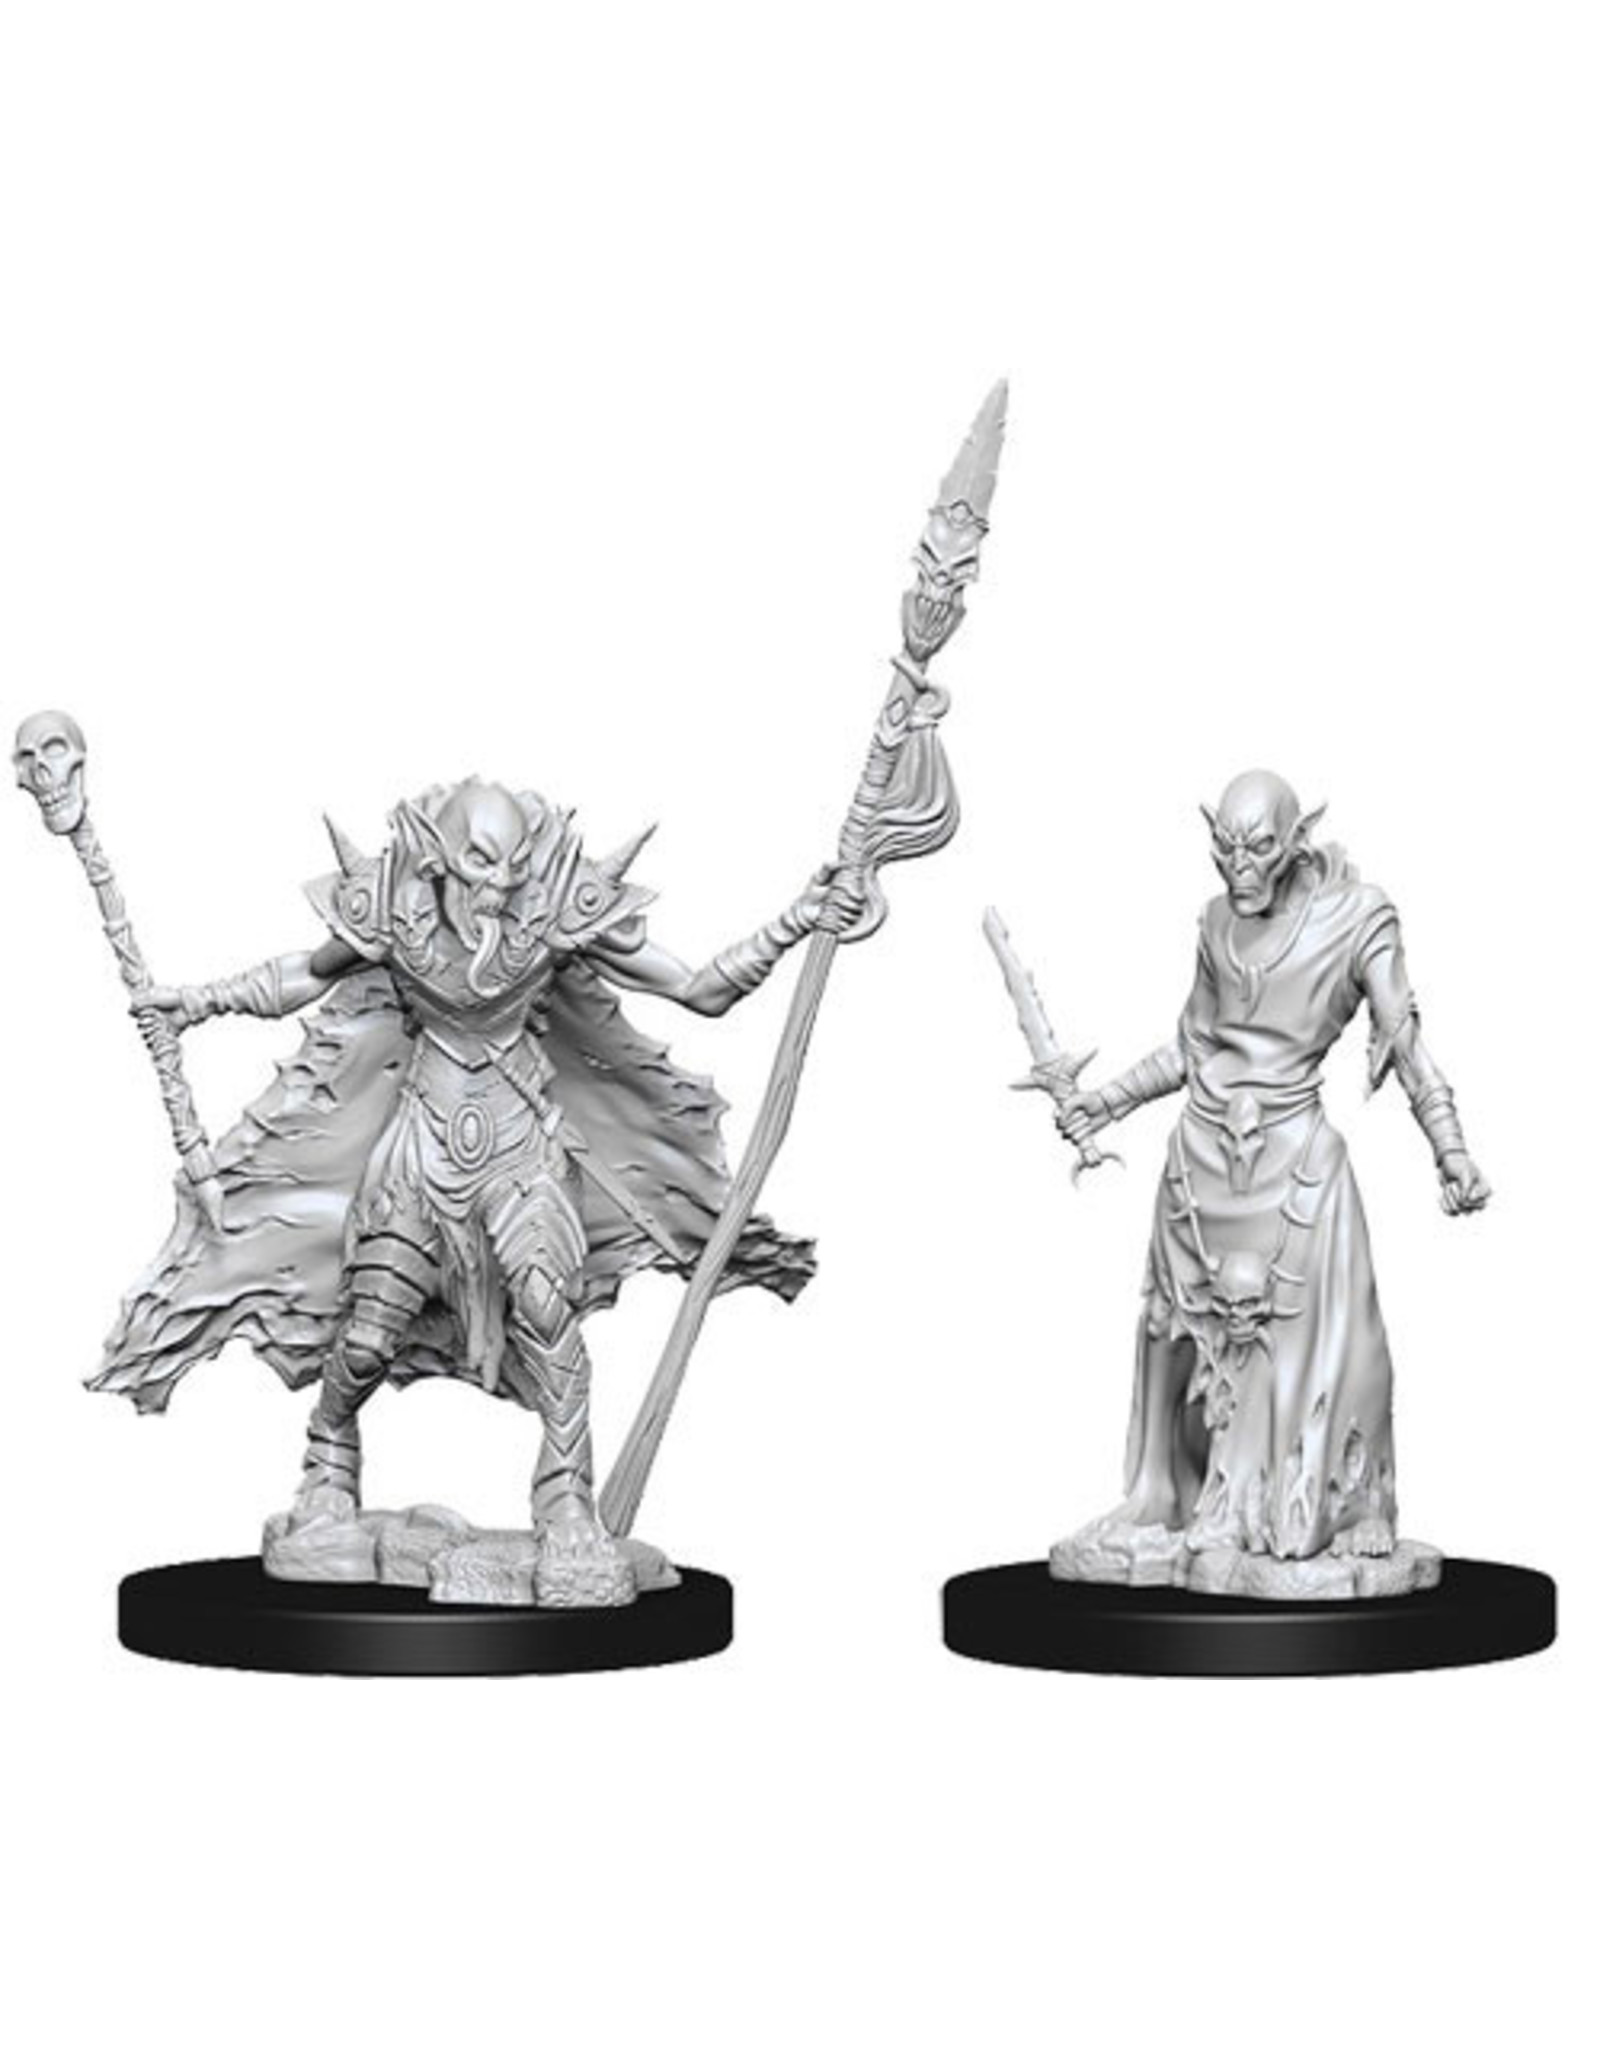 WIZKIDS DEEP CUTS GHOULS UNPAINTED MINI